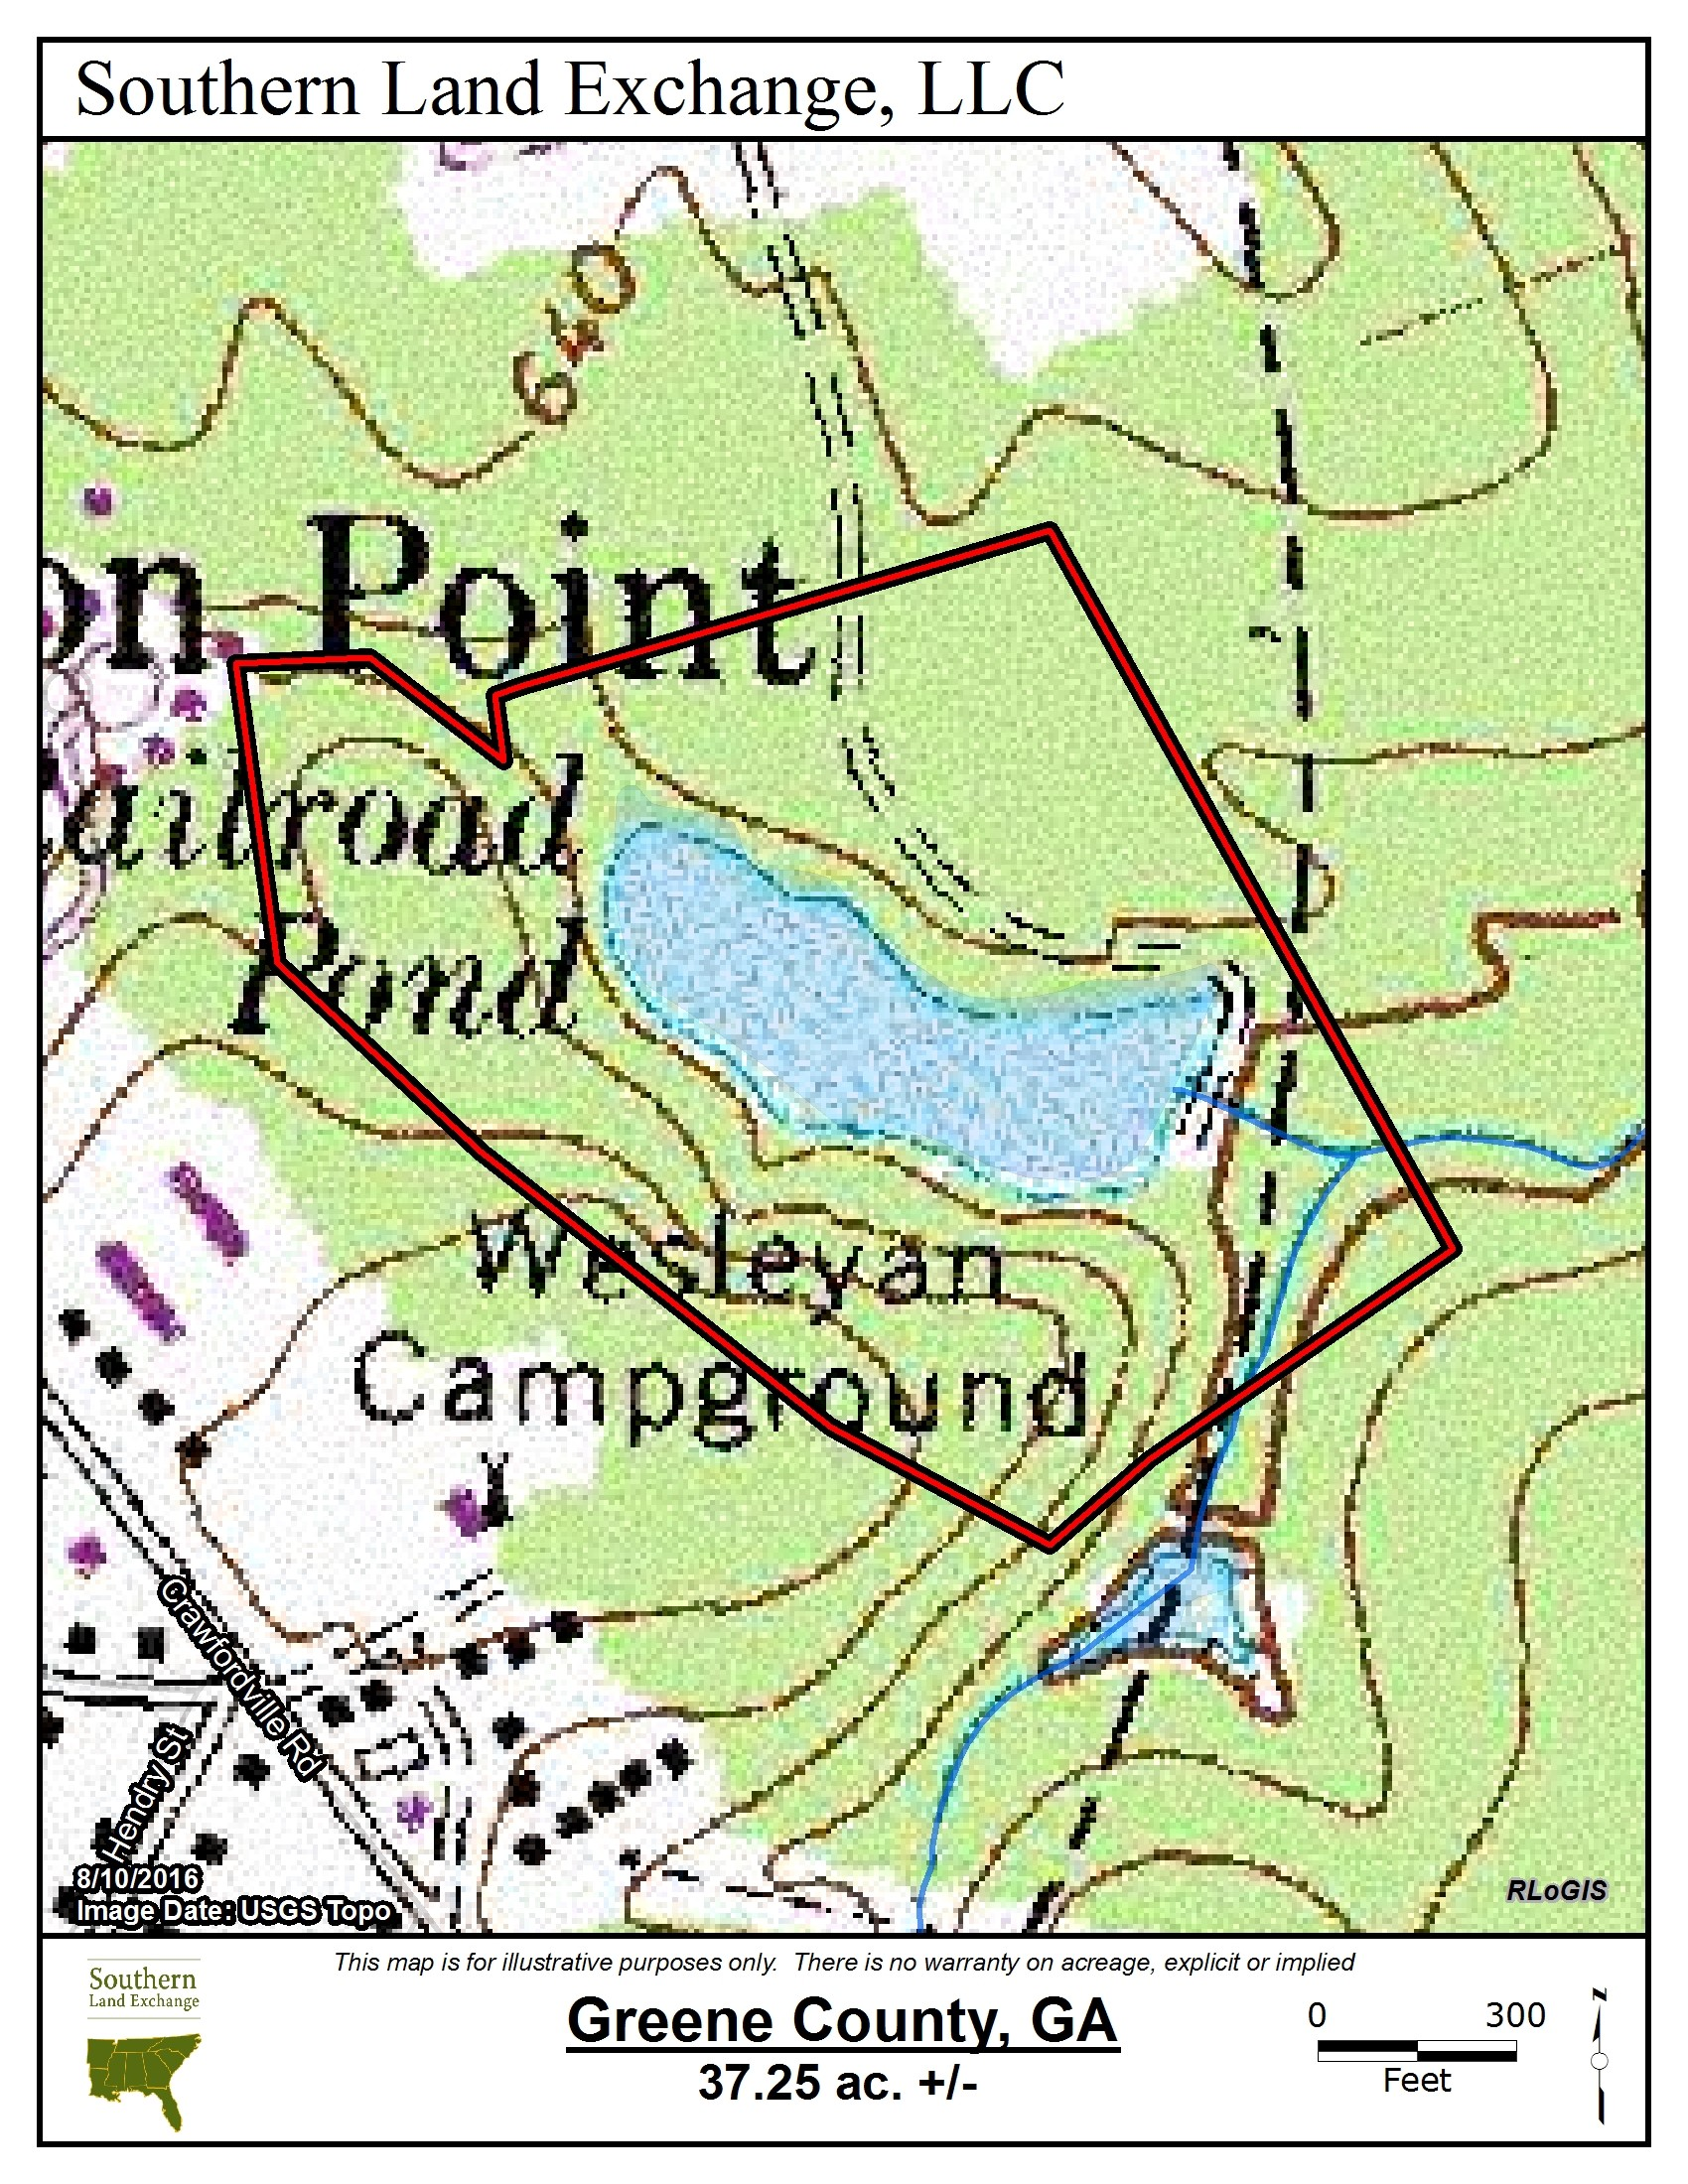 Greene37_USGSTopo.jpg - 37.25 acres of Hunting Land for sale. Crawfordville Road, Greensboro, GA